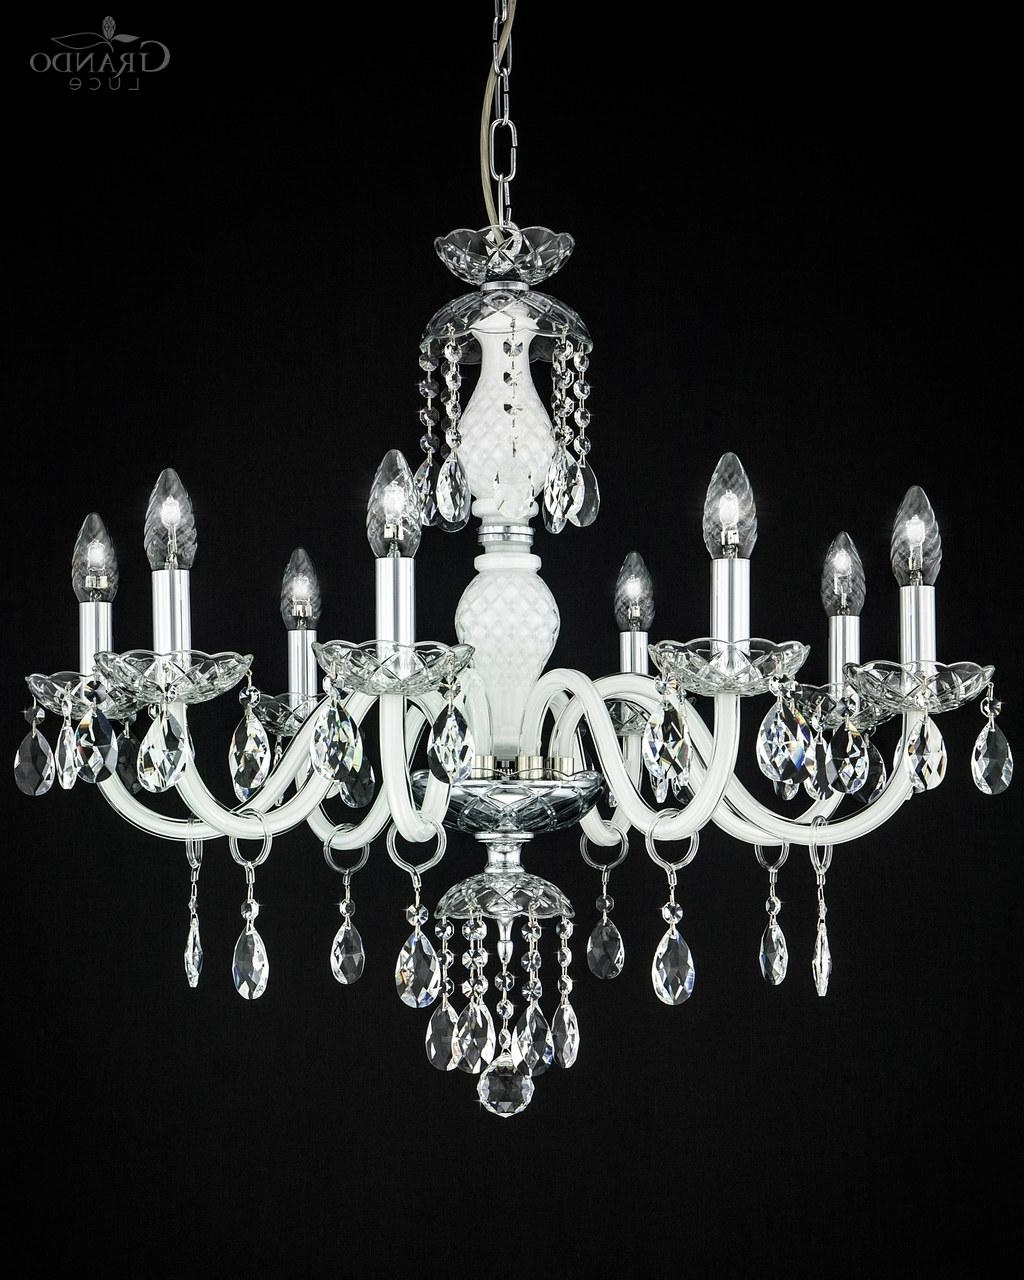 Well Known White And Crystal Chandeliers With Regard To 104/ch 8 Chrome White Crystal Chandelier With Swrovski Spectra (View 3 of 20)